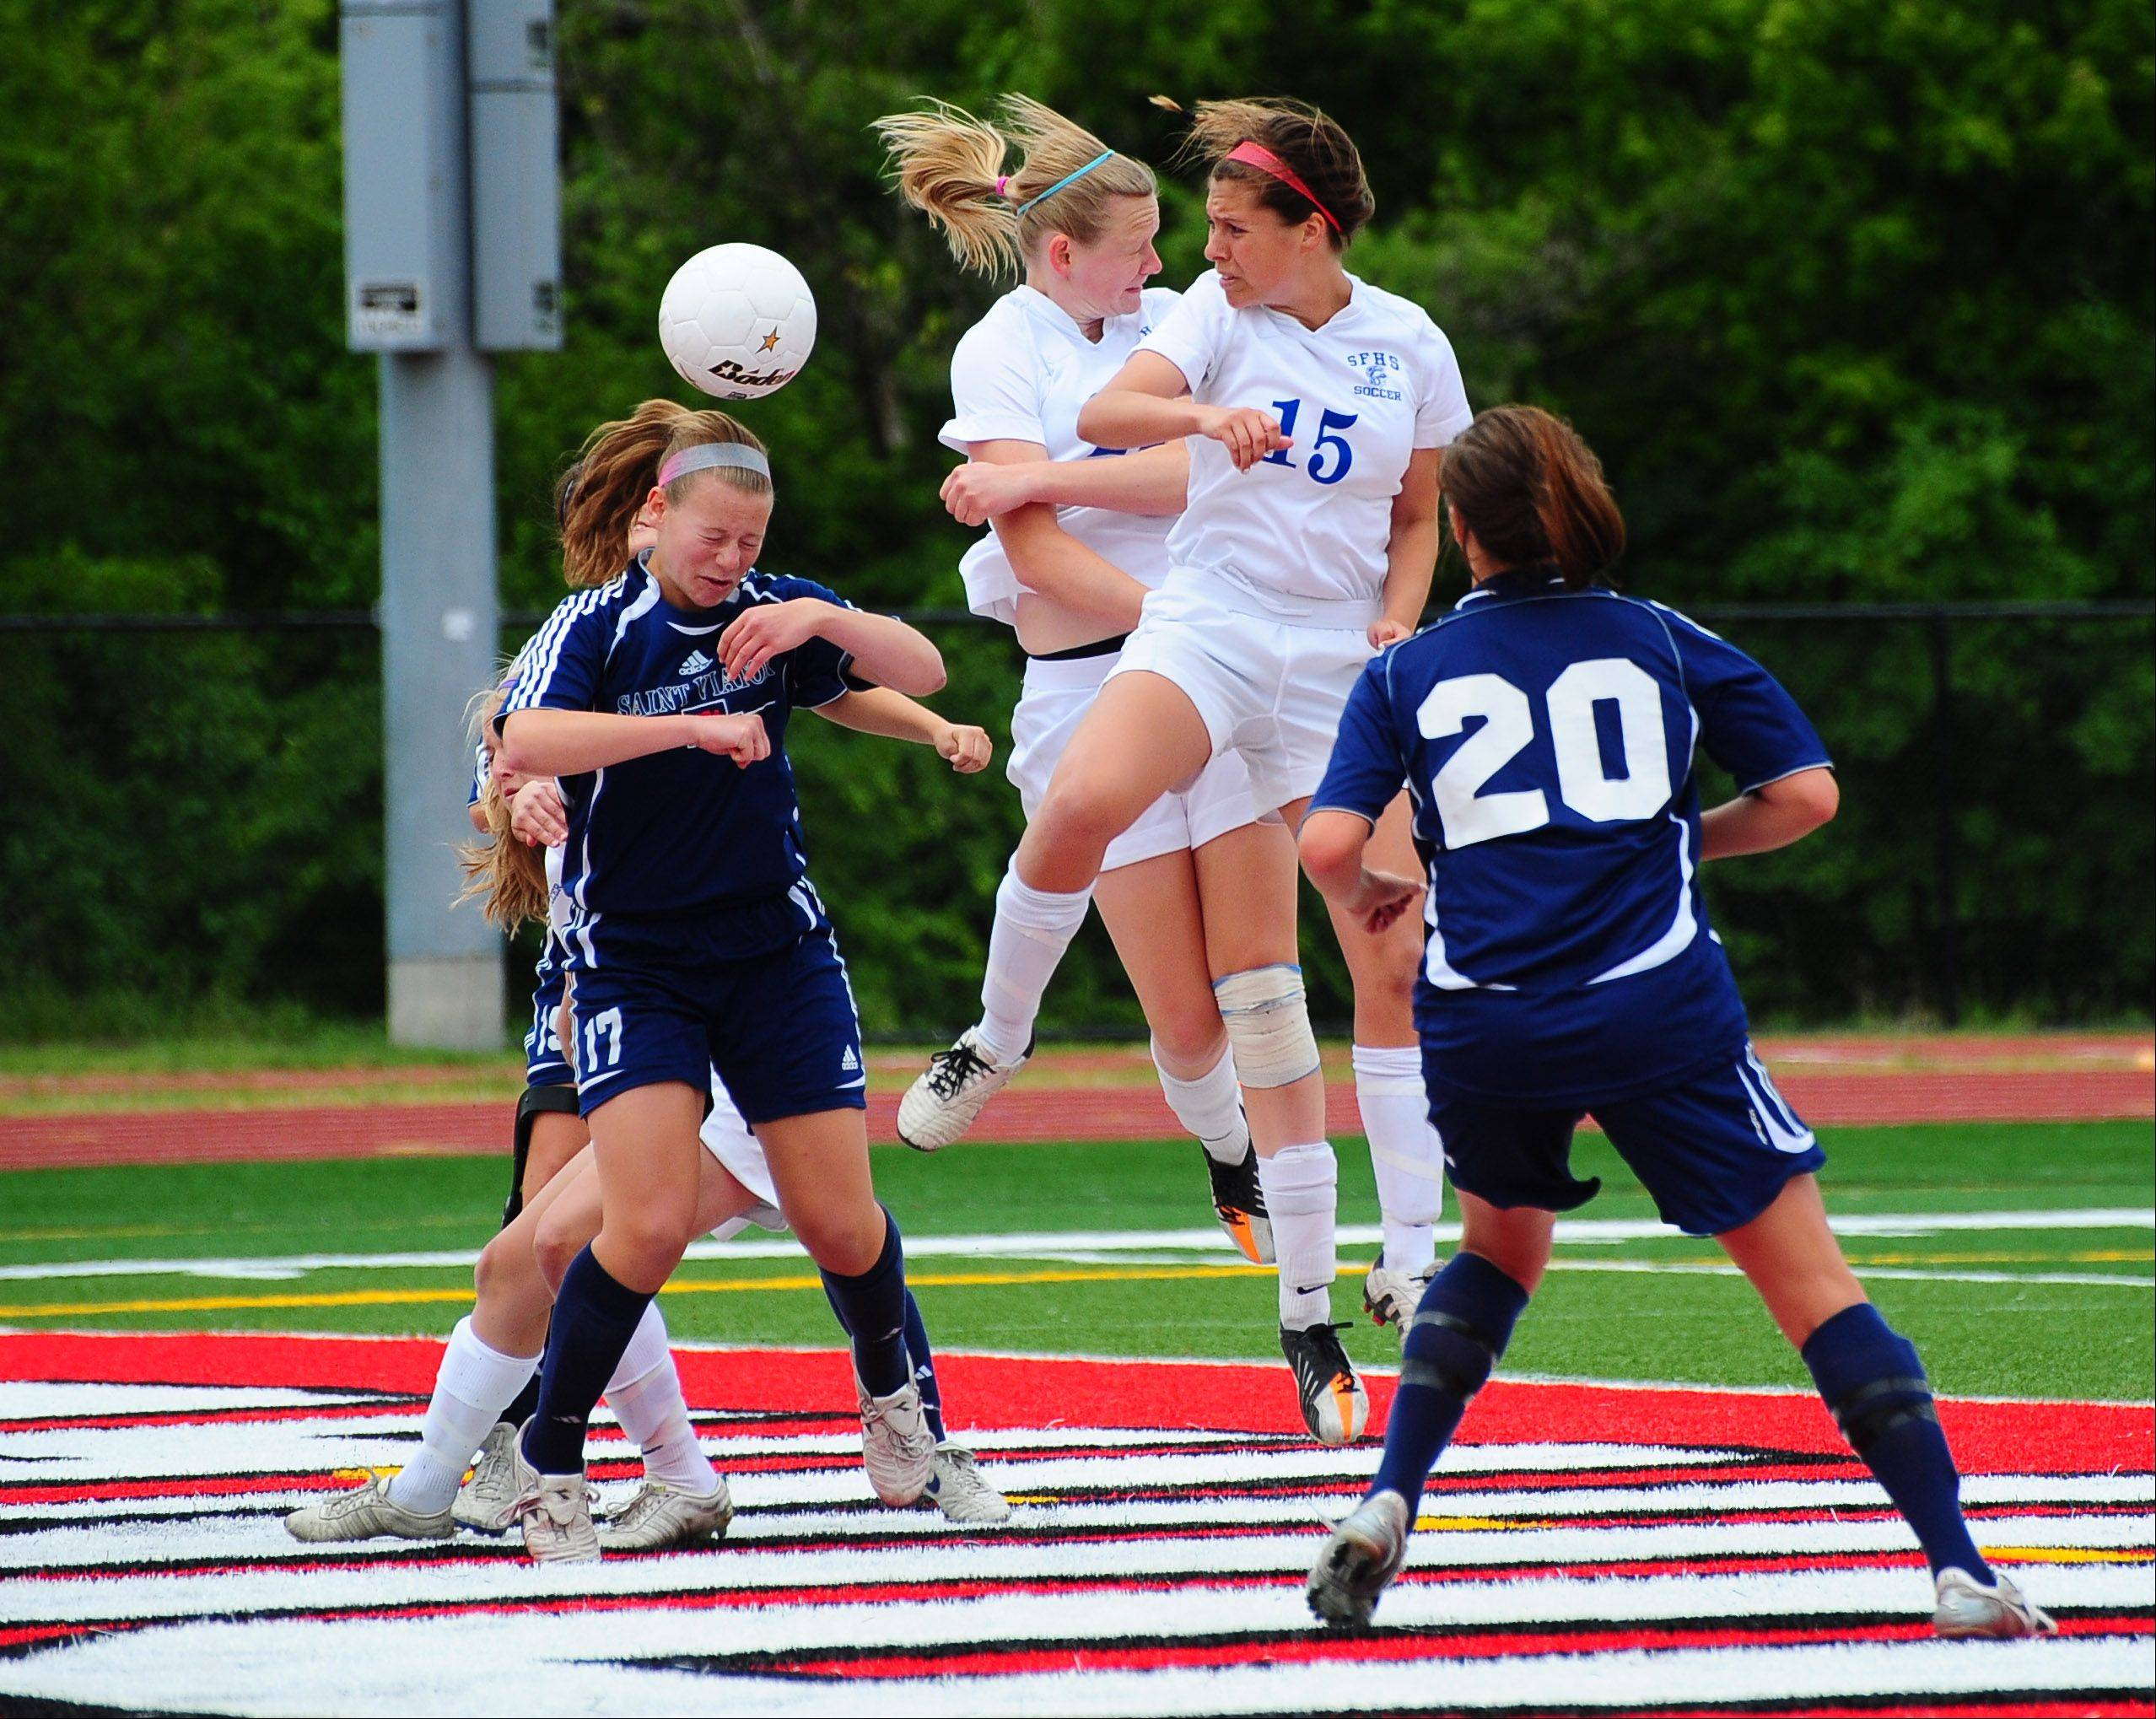 St. Francis' Andrea Ravlin attempts a header after receiving the ball off a corner kick during Friday's girls soccer Class 2A semifinal match between St. Francis and St. Viator.